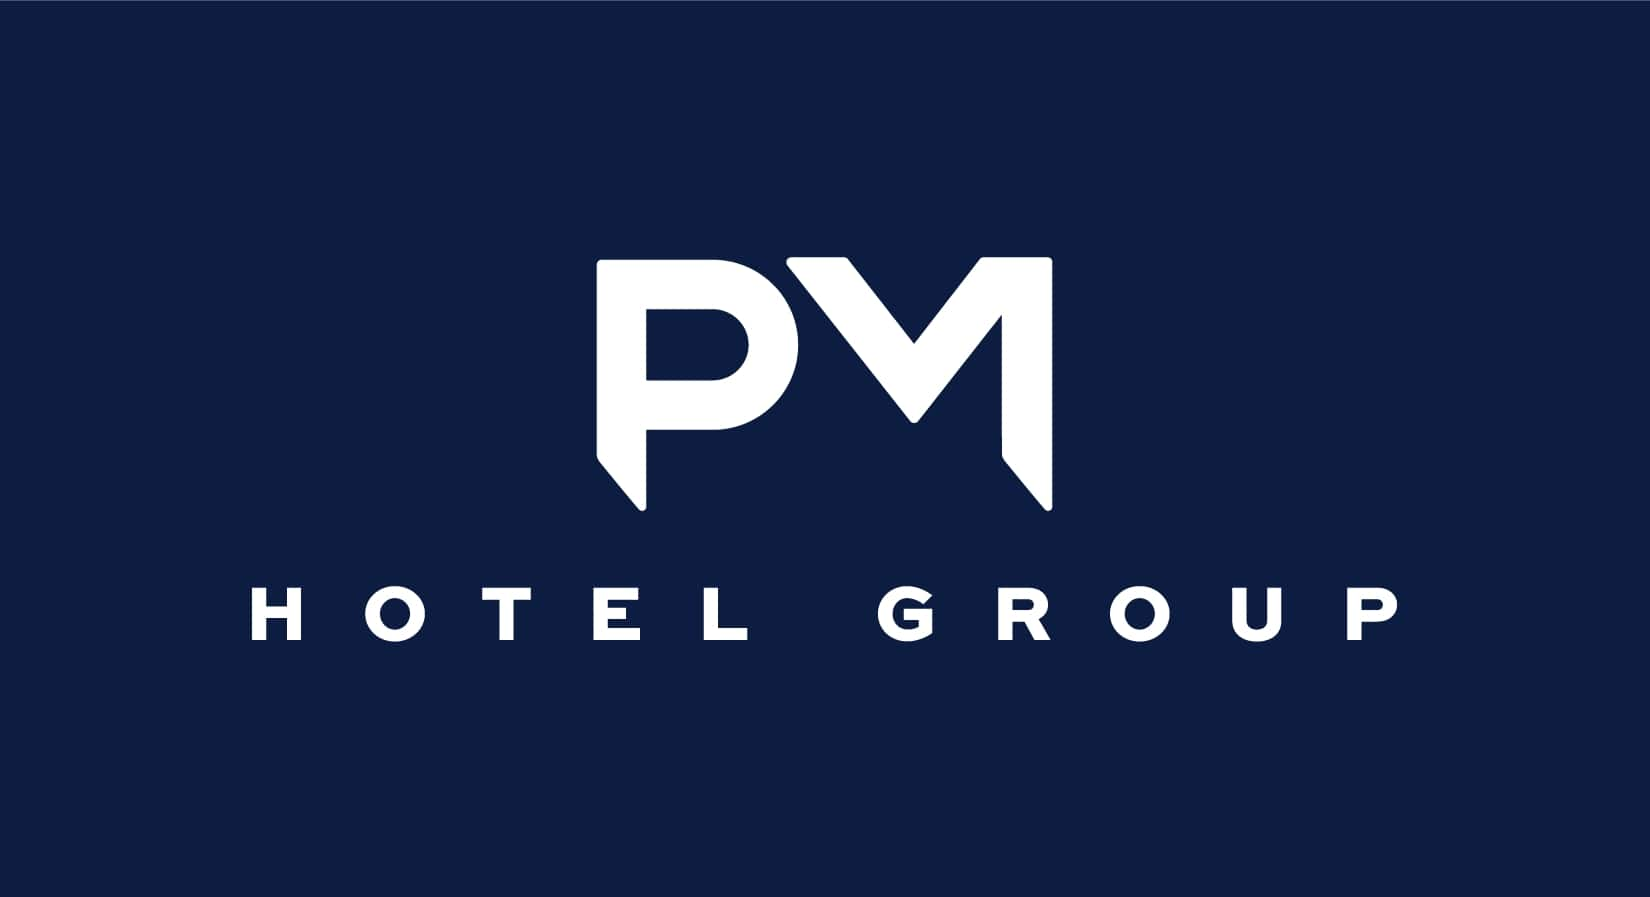 PM Hotel Group